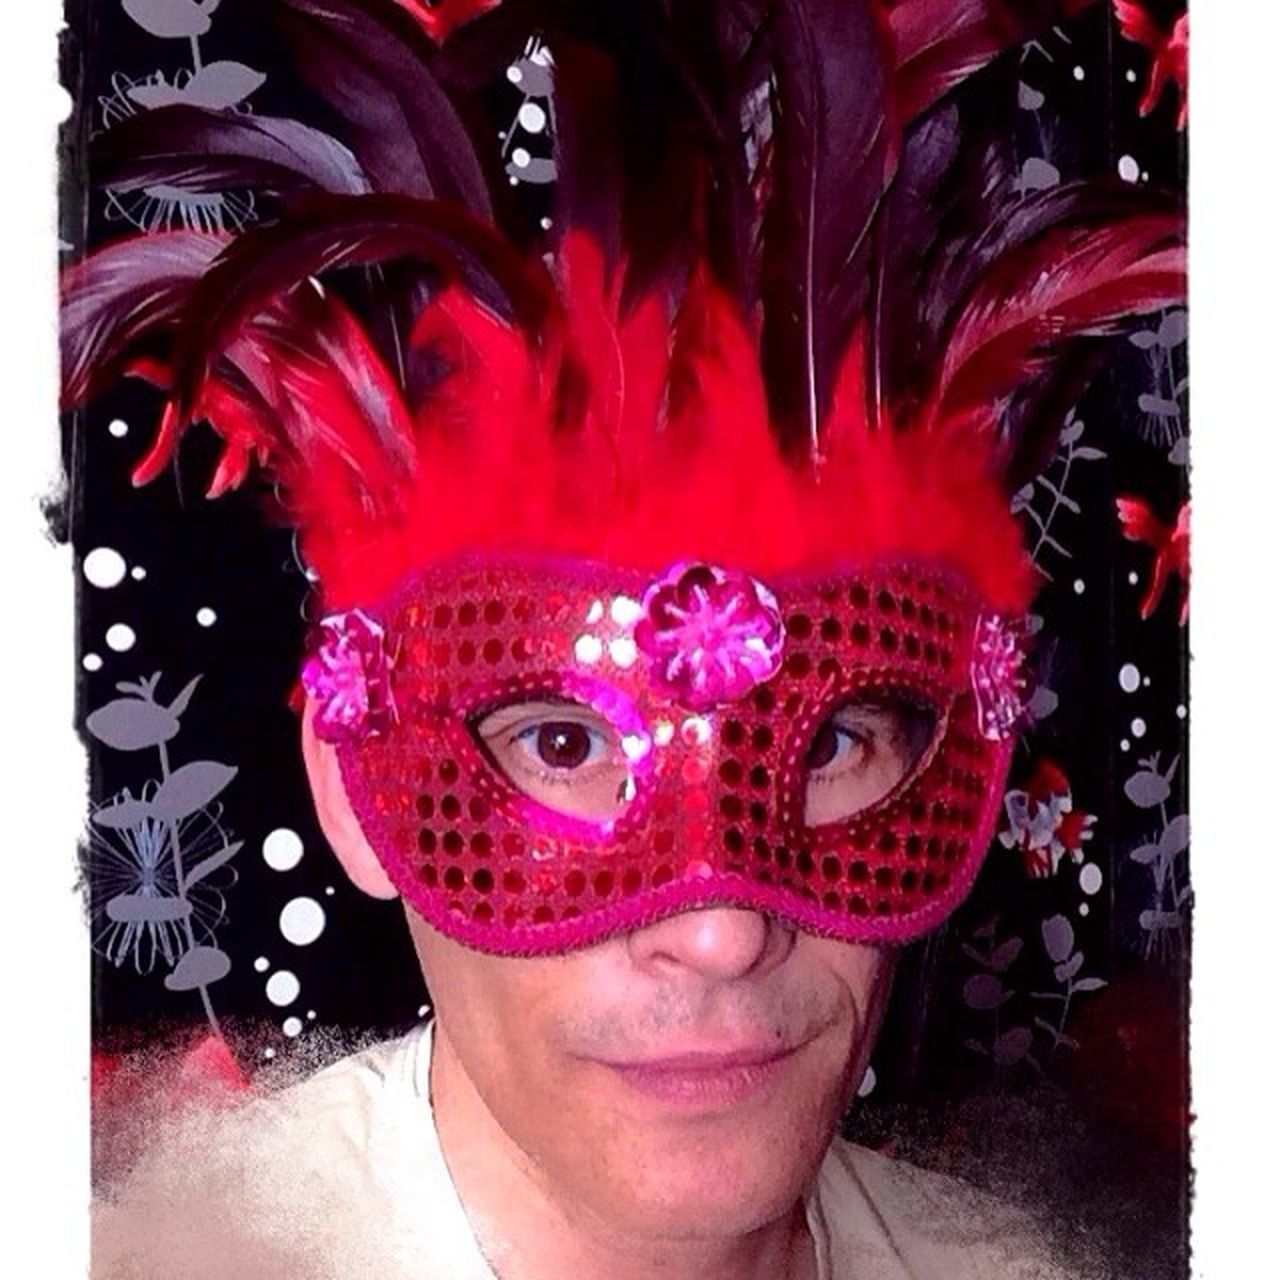 "Here I am. Masquerade. 9.2.2014. Masquerade Karneval Maske  Gaga Frankfurt Pic Me ""pic of the day"""